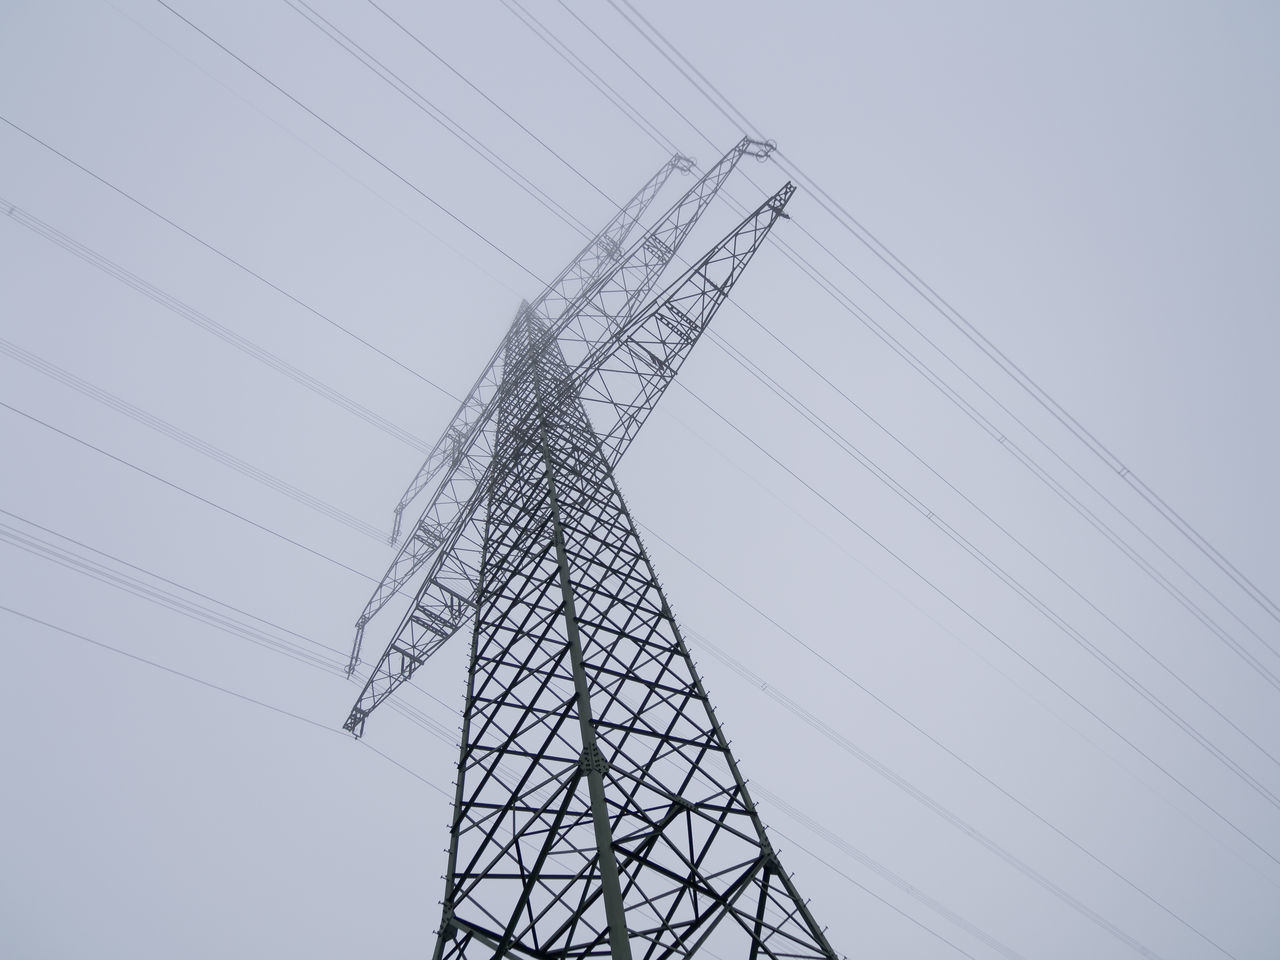 technology, power supply, electricity, low angle view, cable, power line, electricity pylon, connection, fuel and power generation, sky, metal, nature, no people, tall - high, outdoors, clear sky, day, complexity, built structure, industry, iron - metal, electrical equipment